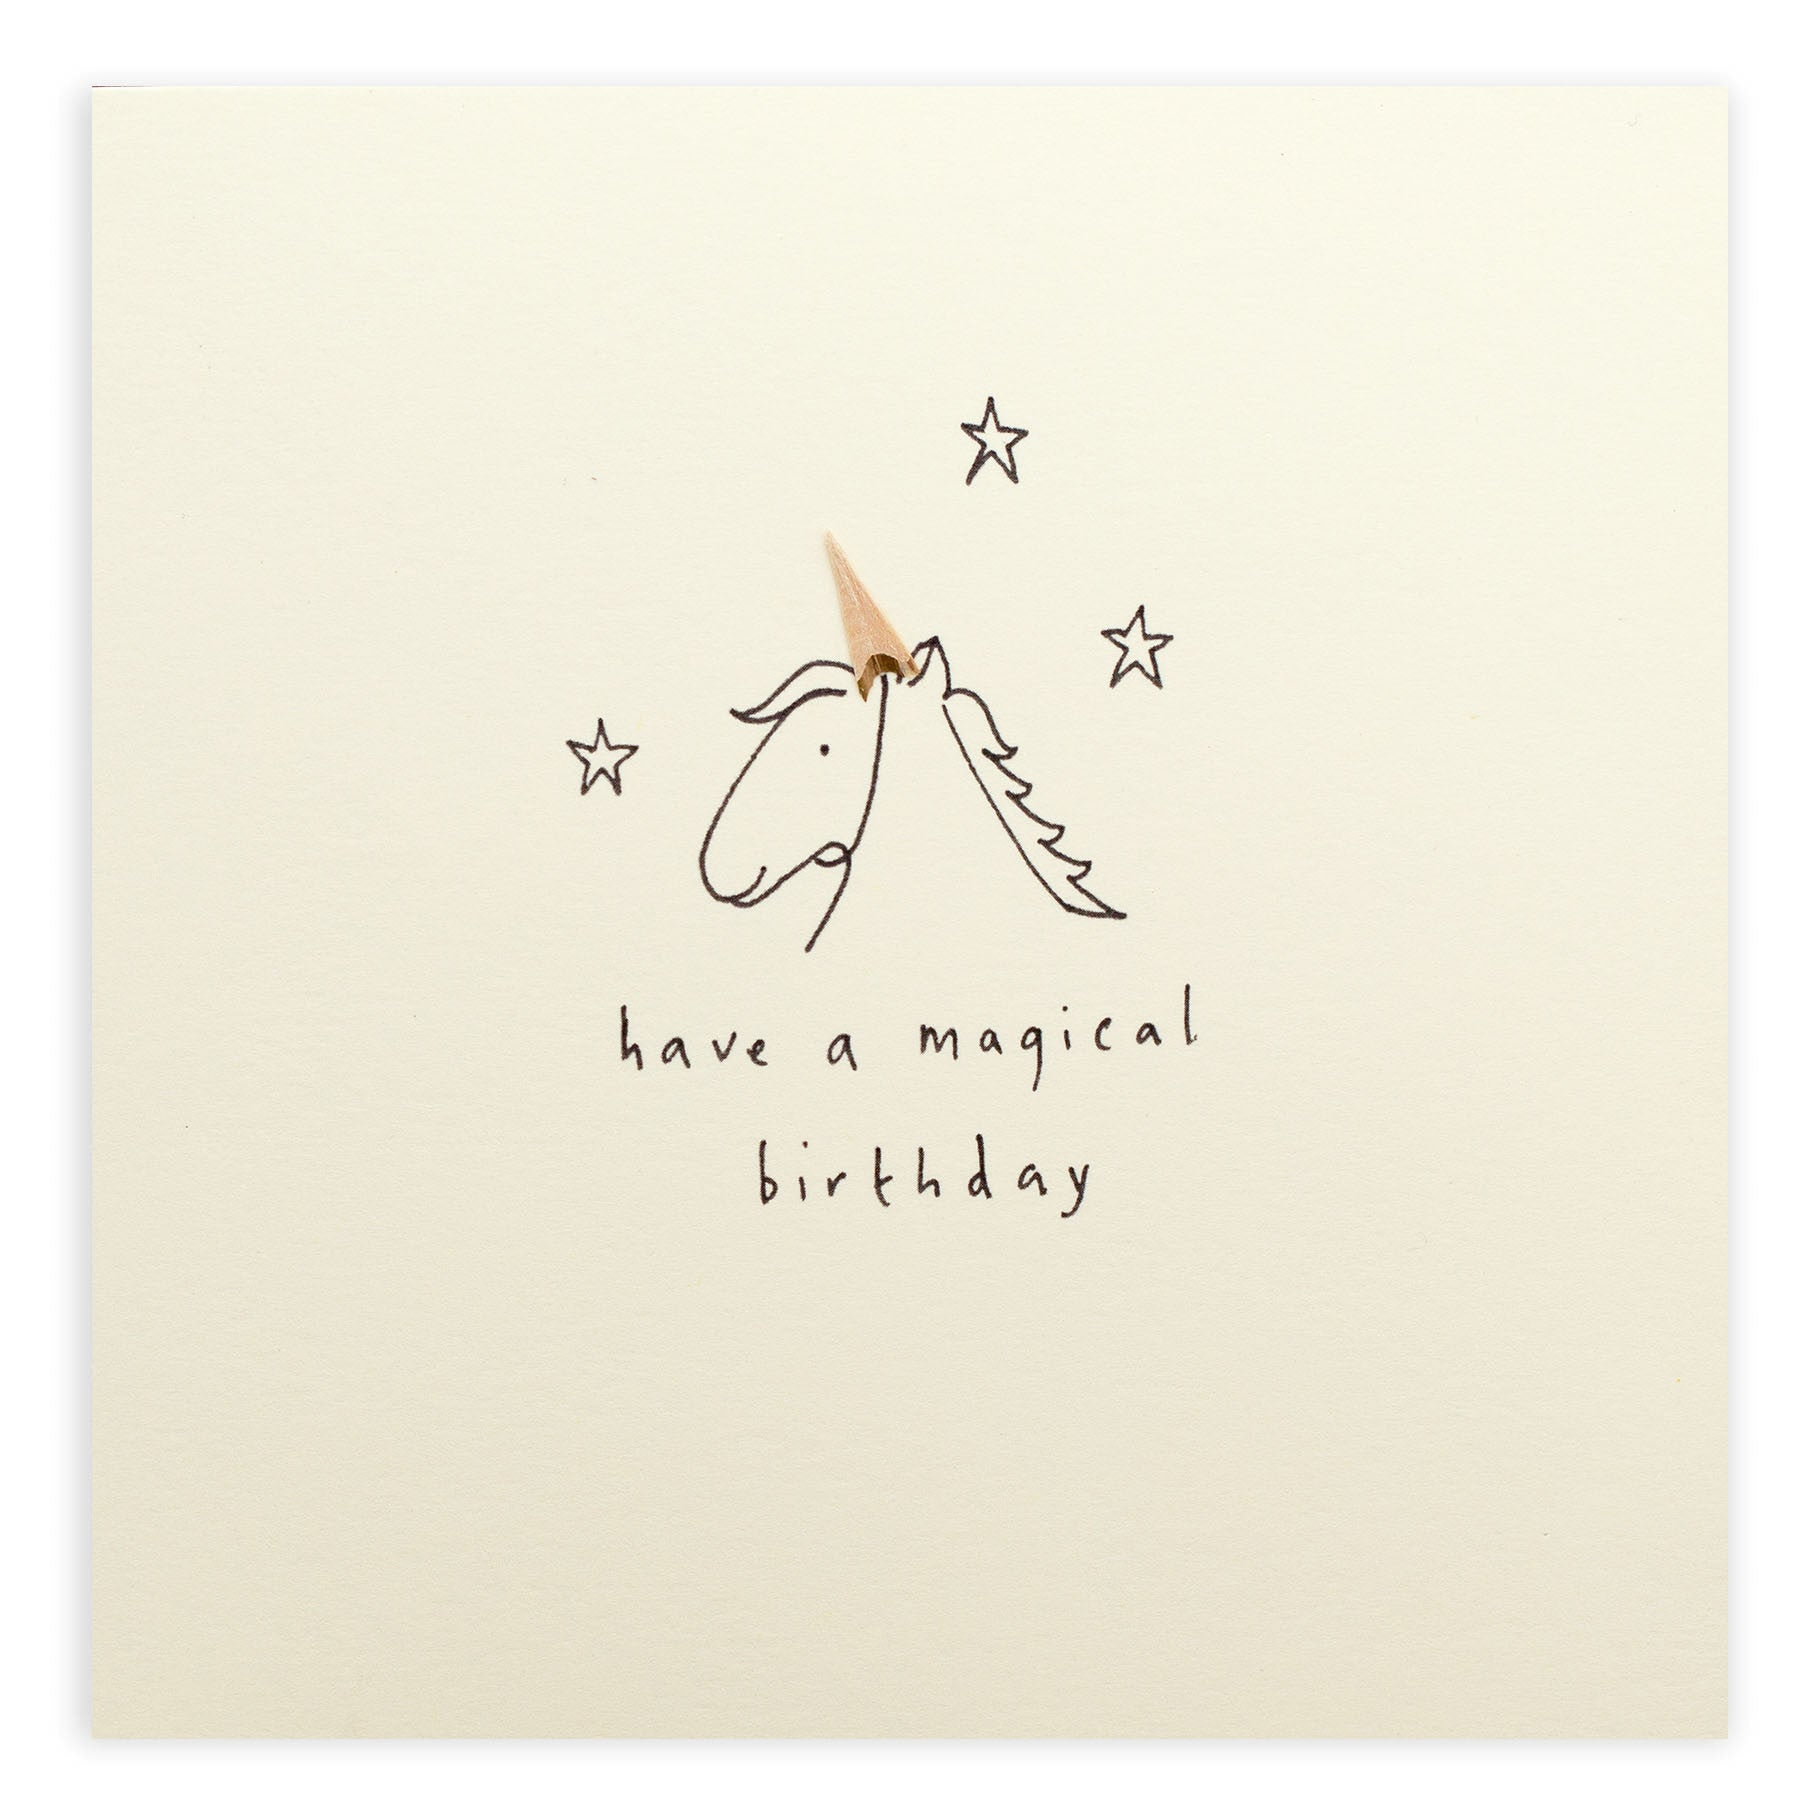 Greetings Cards - Ruth Jackson - Birthday Unicorn - how-i-wonder